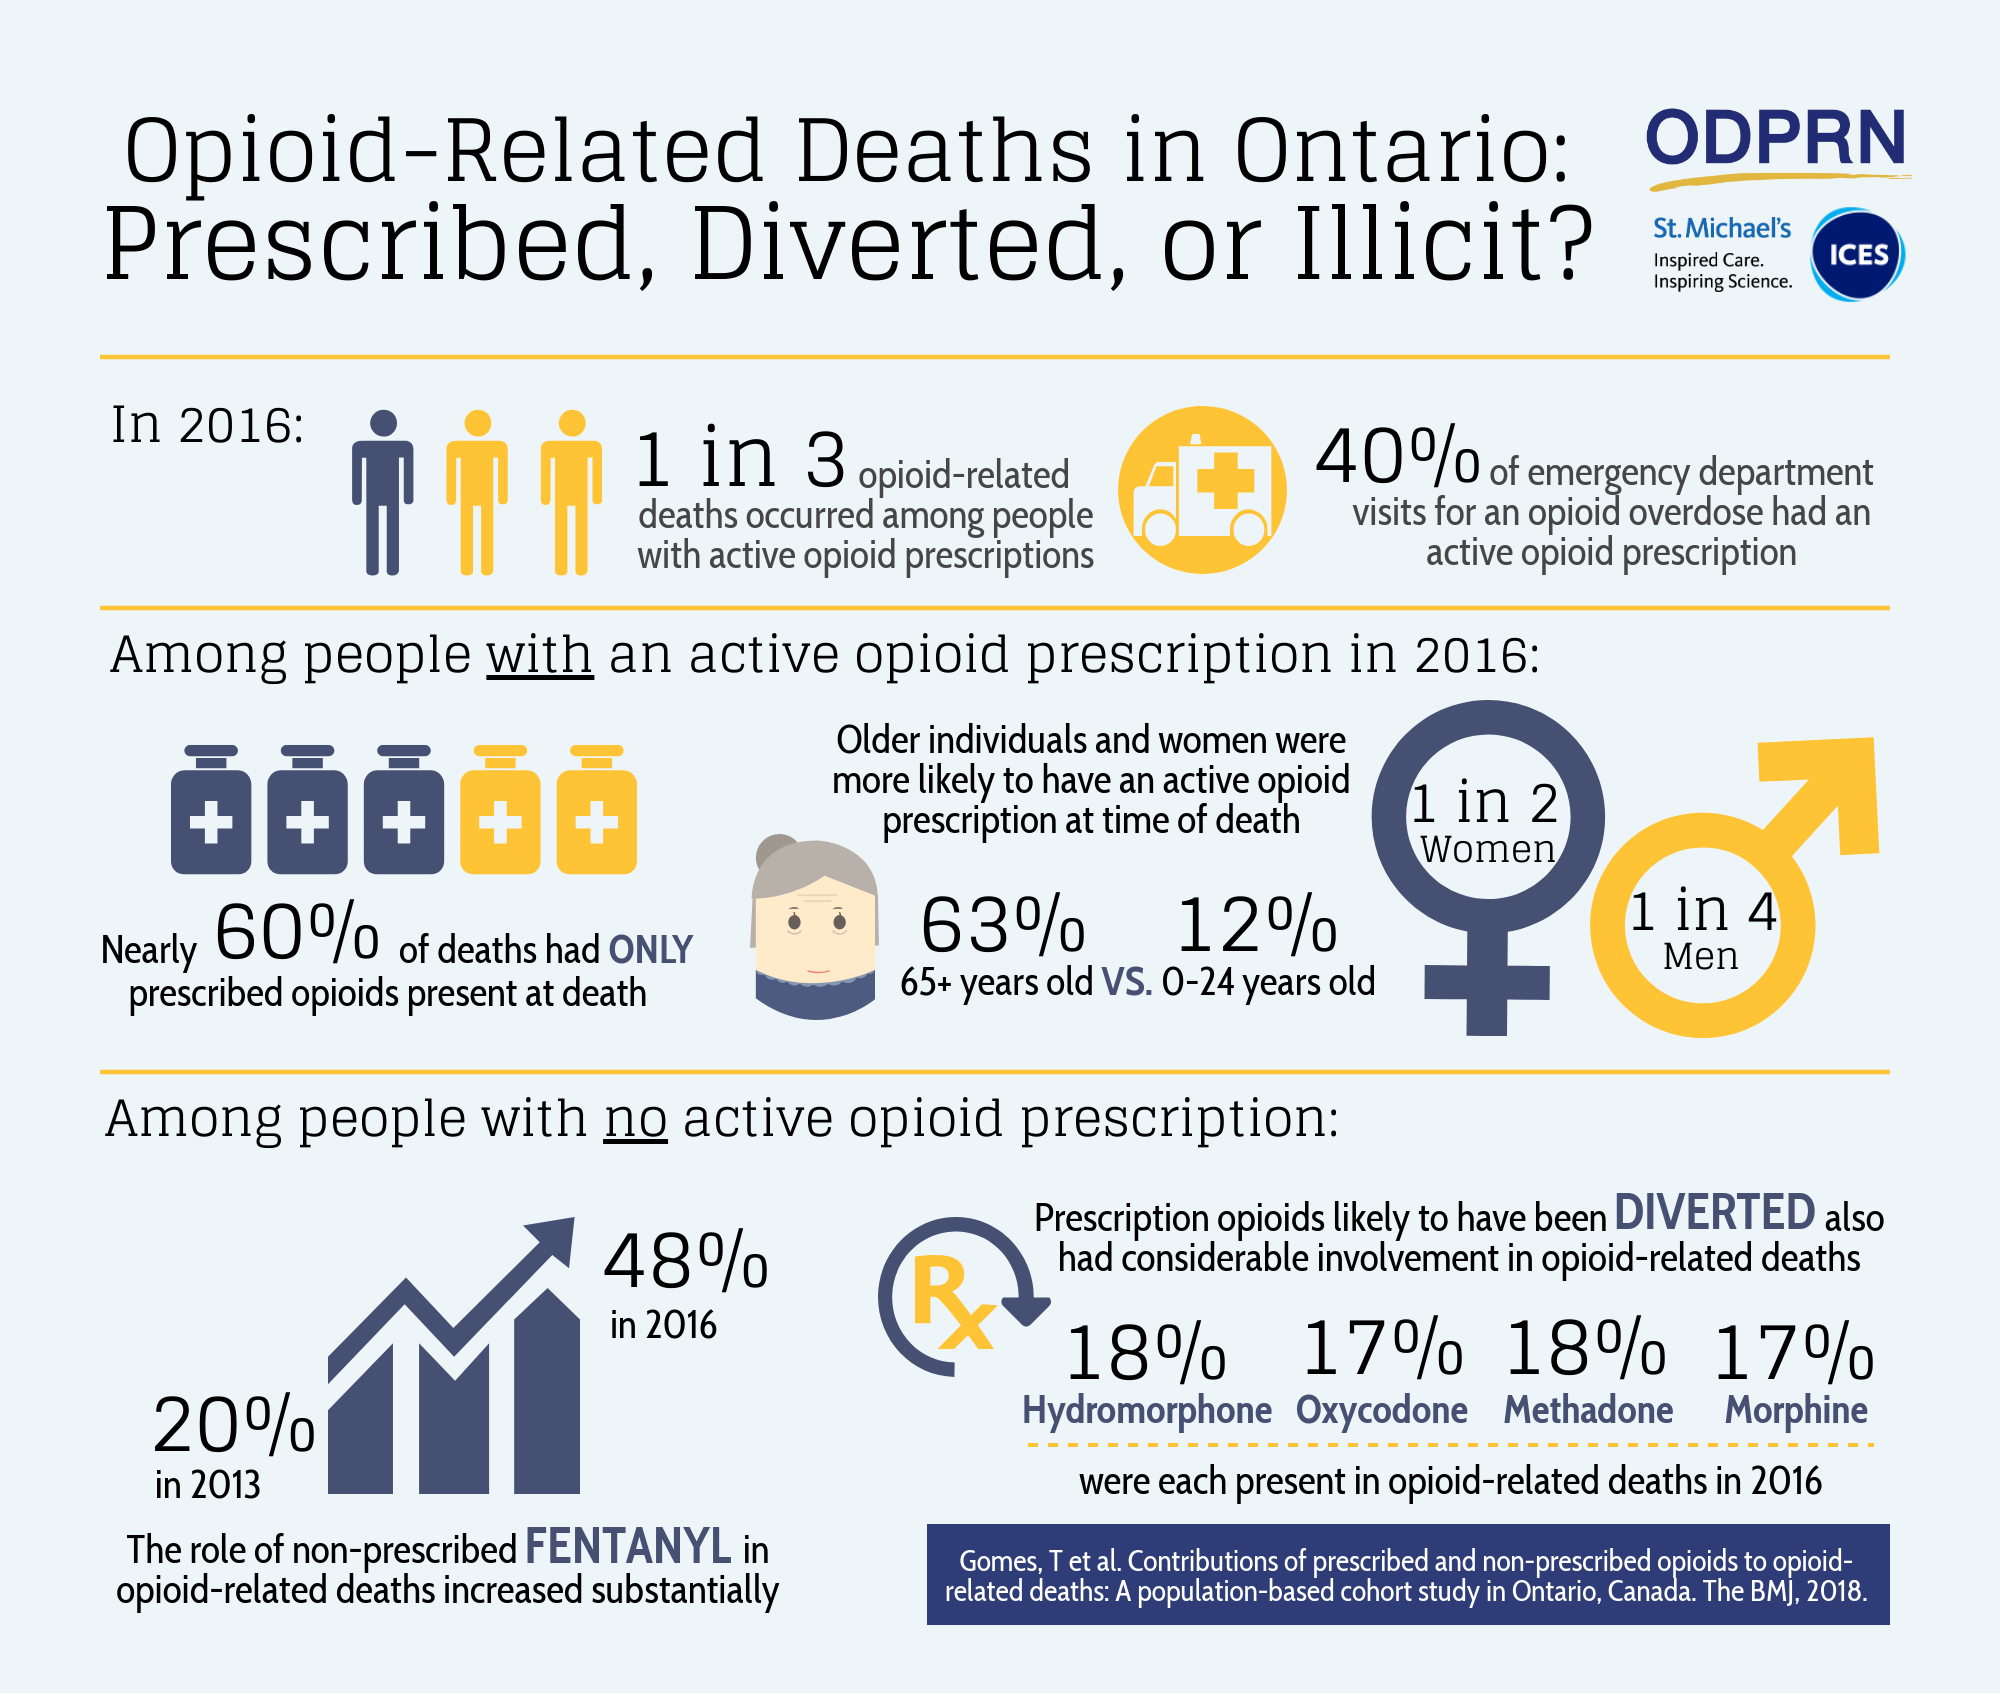 the abusive use of oxycontin and the rise of opioid related deaths in 2015 In 2015 substance use disorders resulted in 307,400 deaths, up from 165,000 deaths in 1990 [4] [8] of these, the highest numbers are from alcohol use disorders at 137,500, opioid use disorders at 122,100 deaths, amphetamine use disorders at 12,200 deaths, and cocaine use disorders at 11,100.